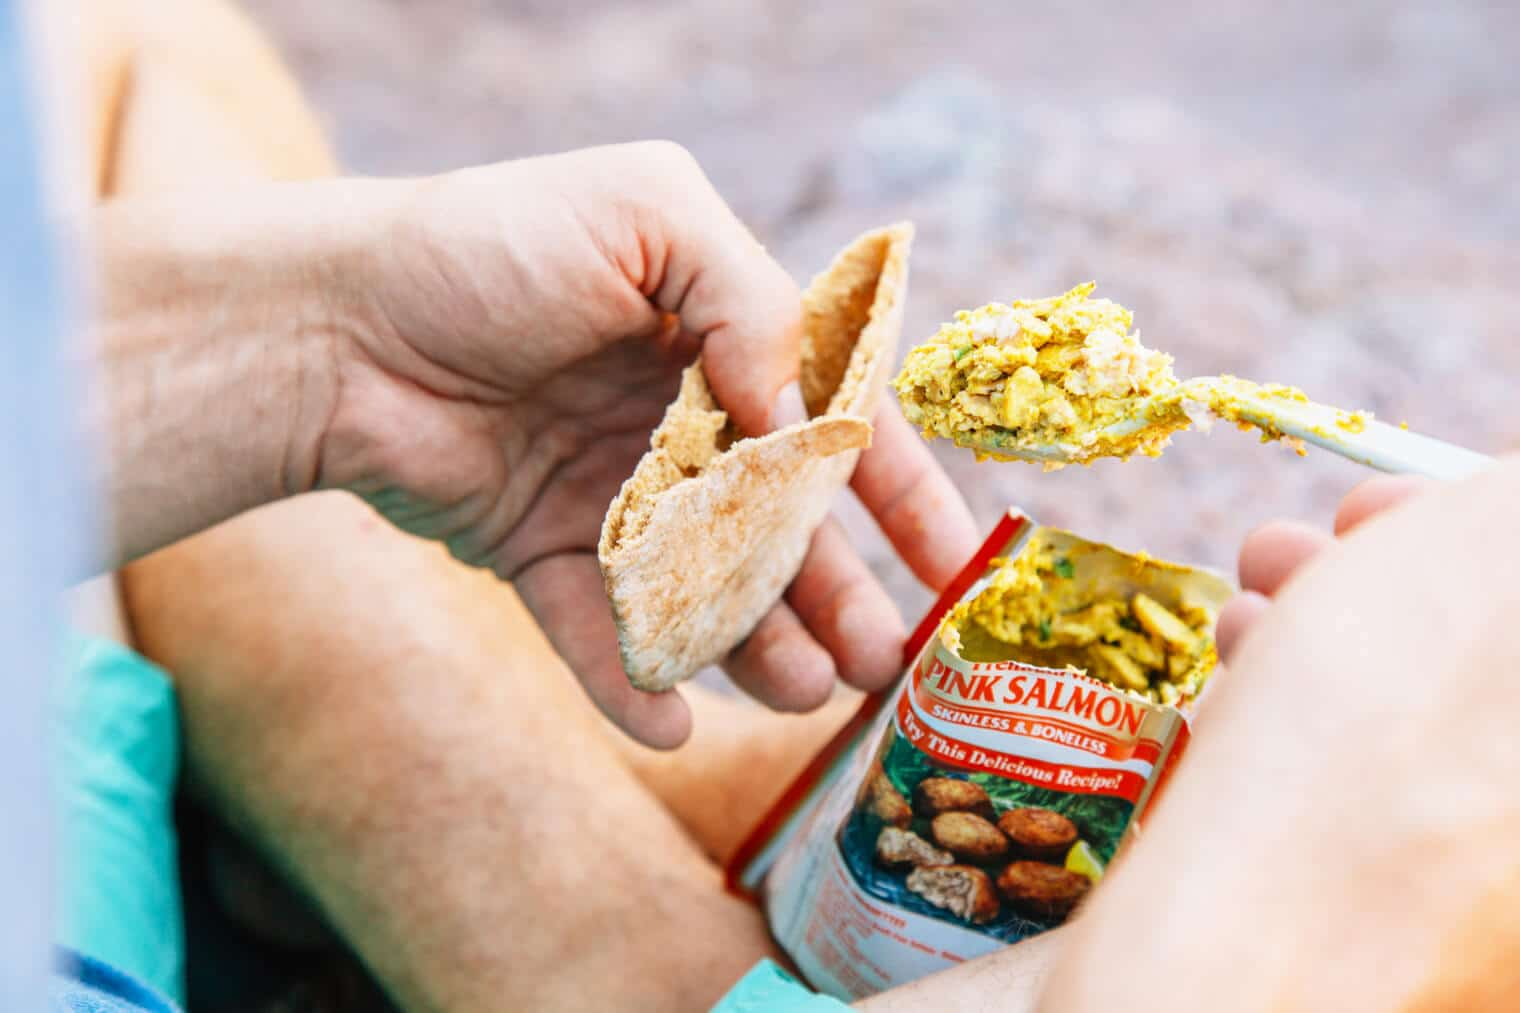 Backpacking meals by Fireside Provisions offer easy, healthy options for hungry hikers.